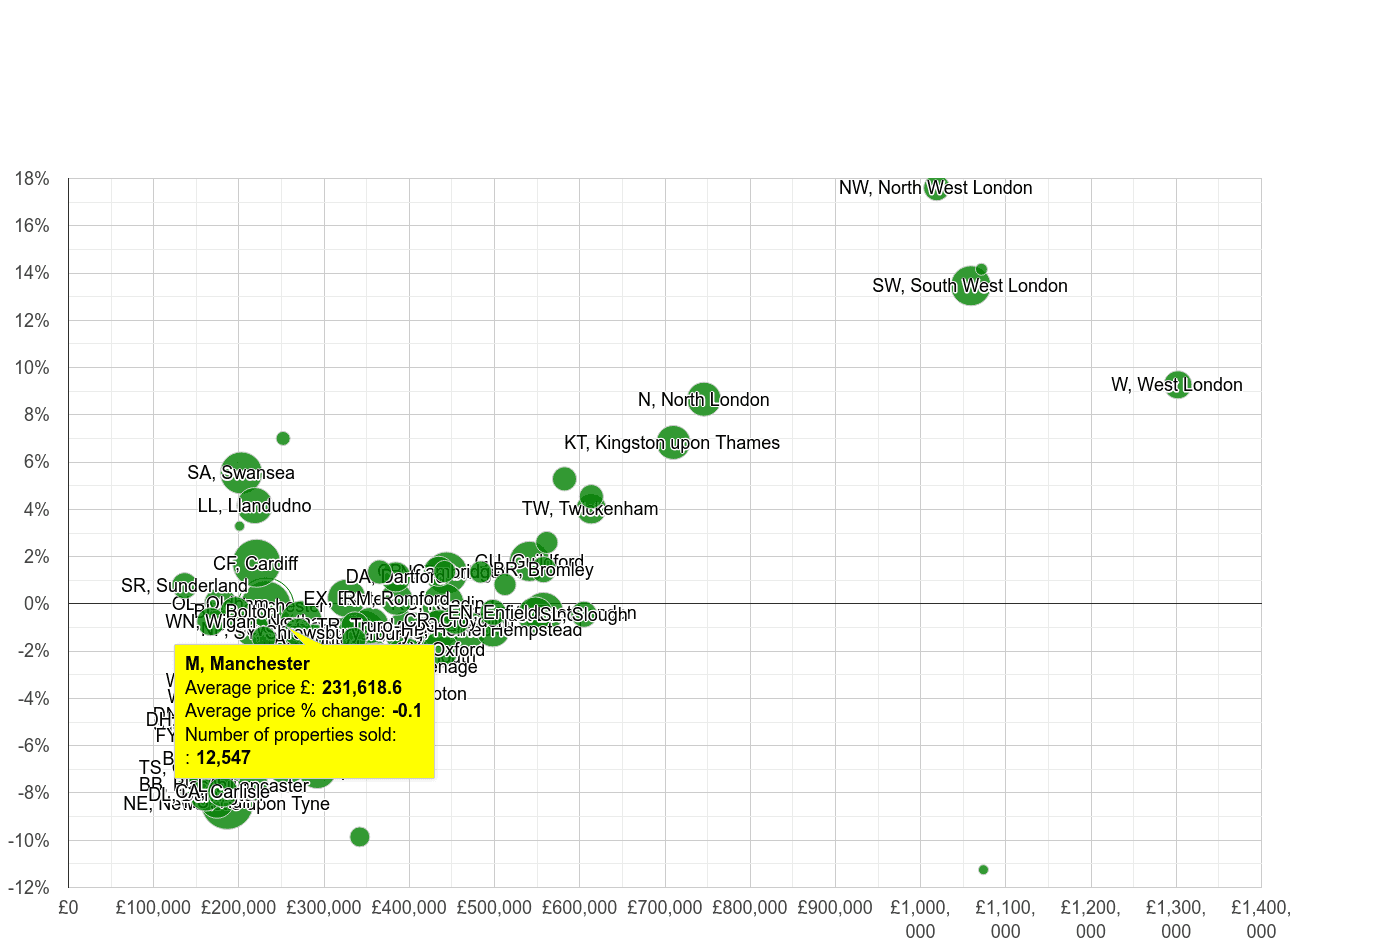 Manchester house prices compared to other areas